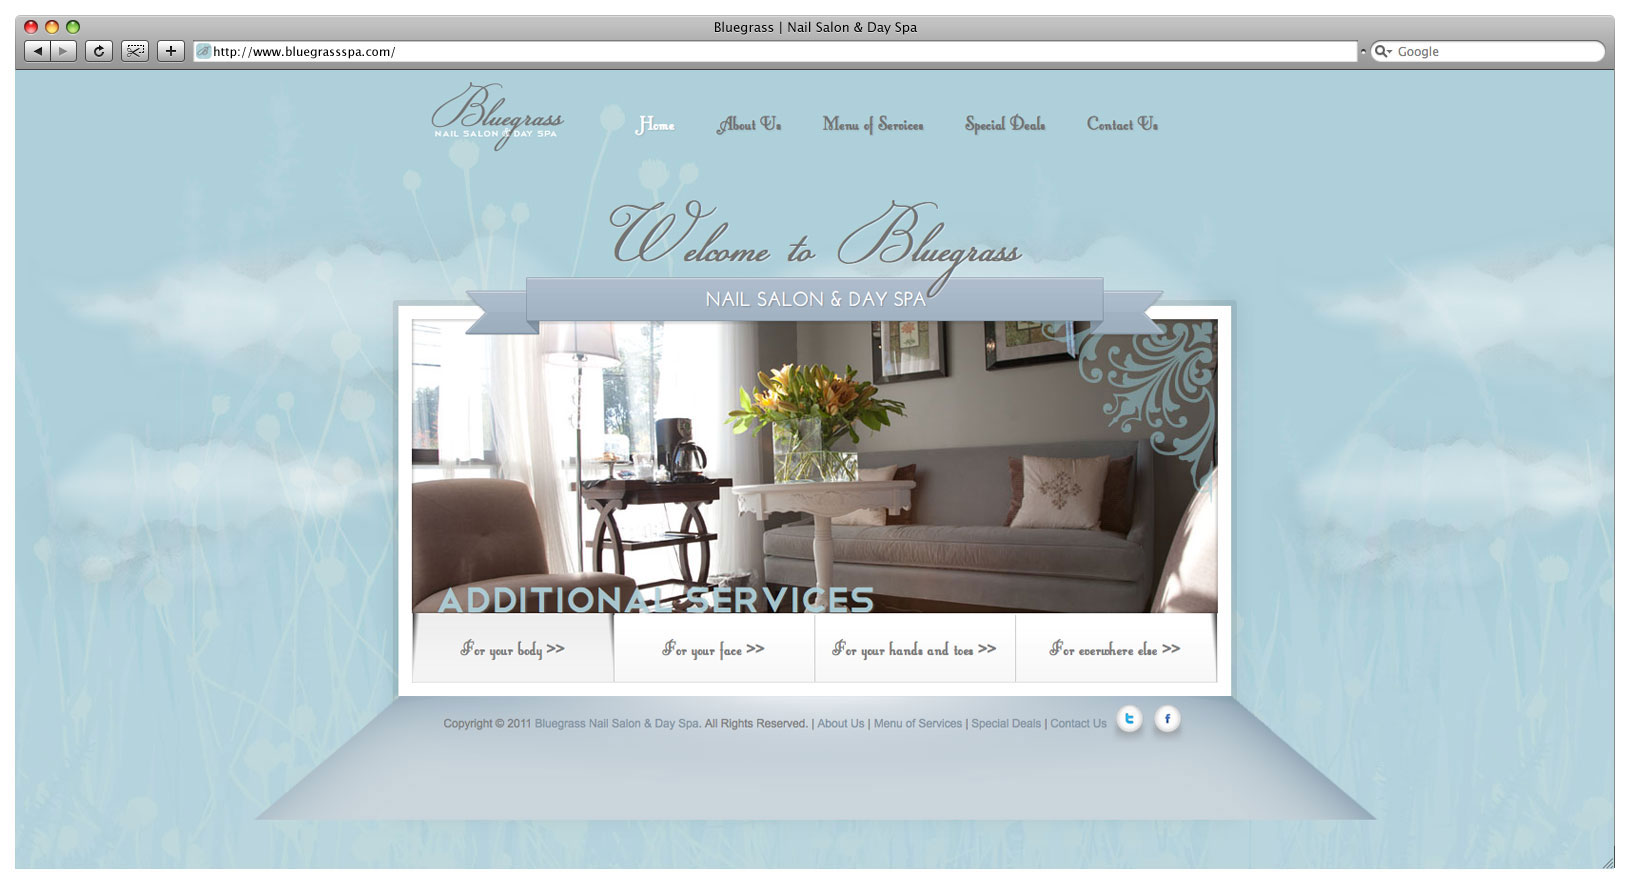 Bluegrass Day Spa & Nail Salon Website - Landing Page Slider 4